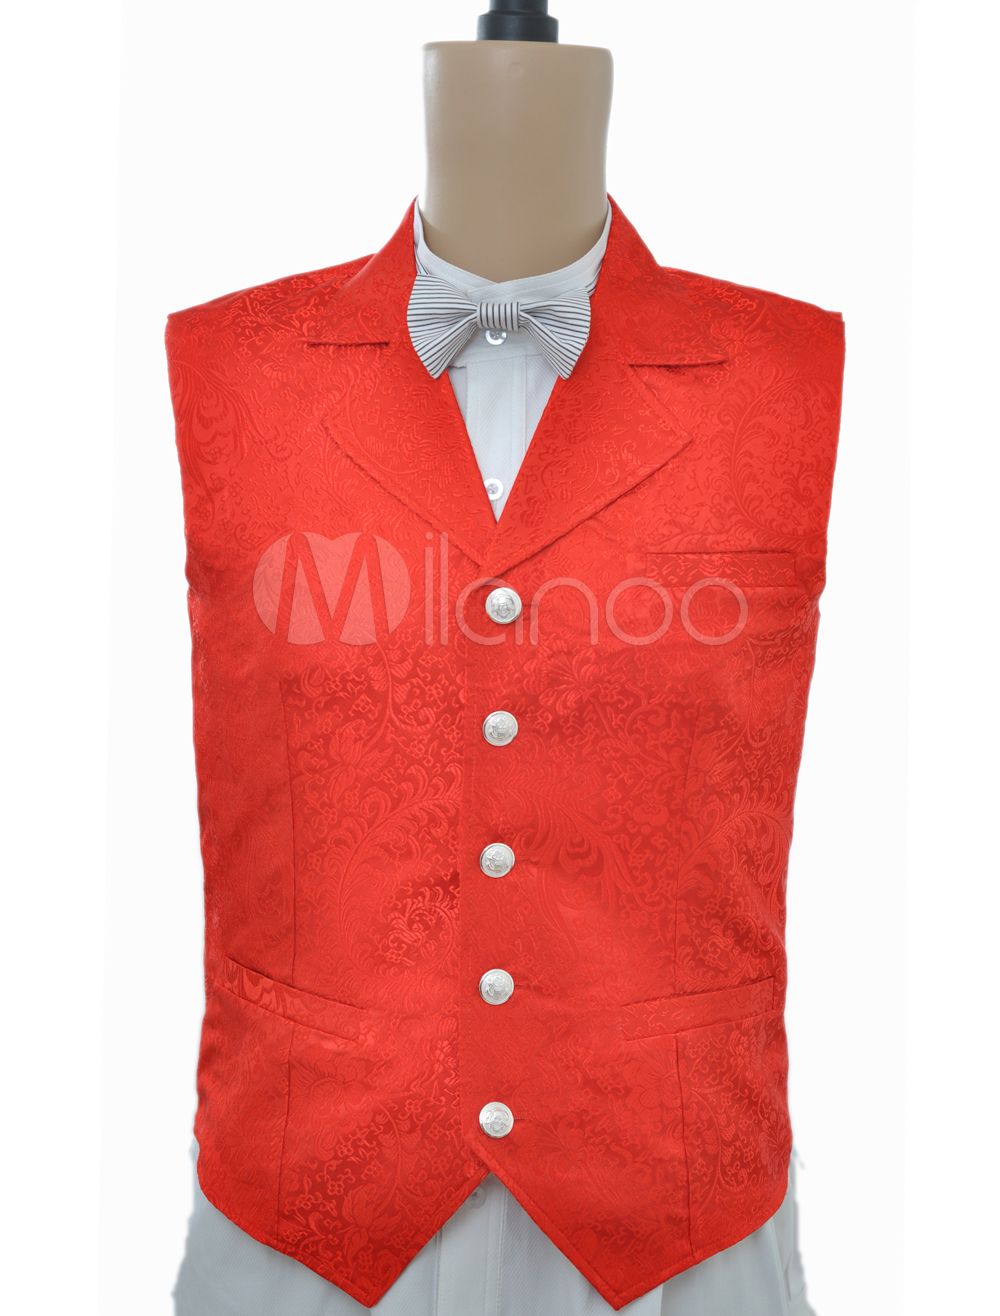 Buy Steampunk Vintage Costume Red Waistcoat Men's Back Strap Jacquard Retro Suit Vest Halloween for $59.99 in Milanoo store